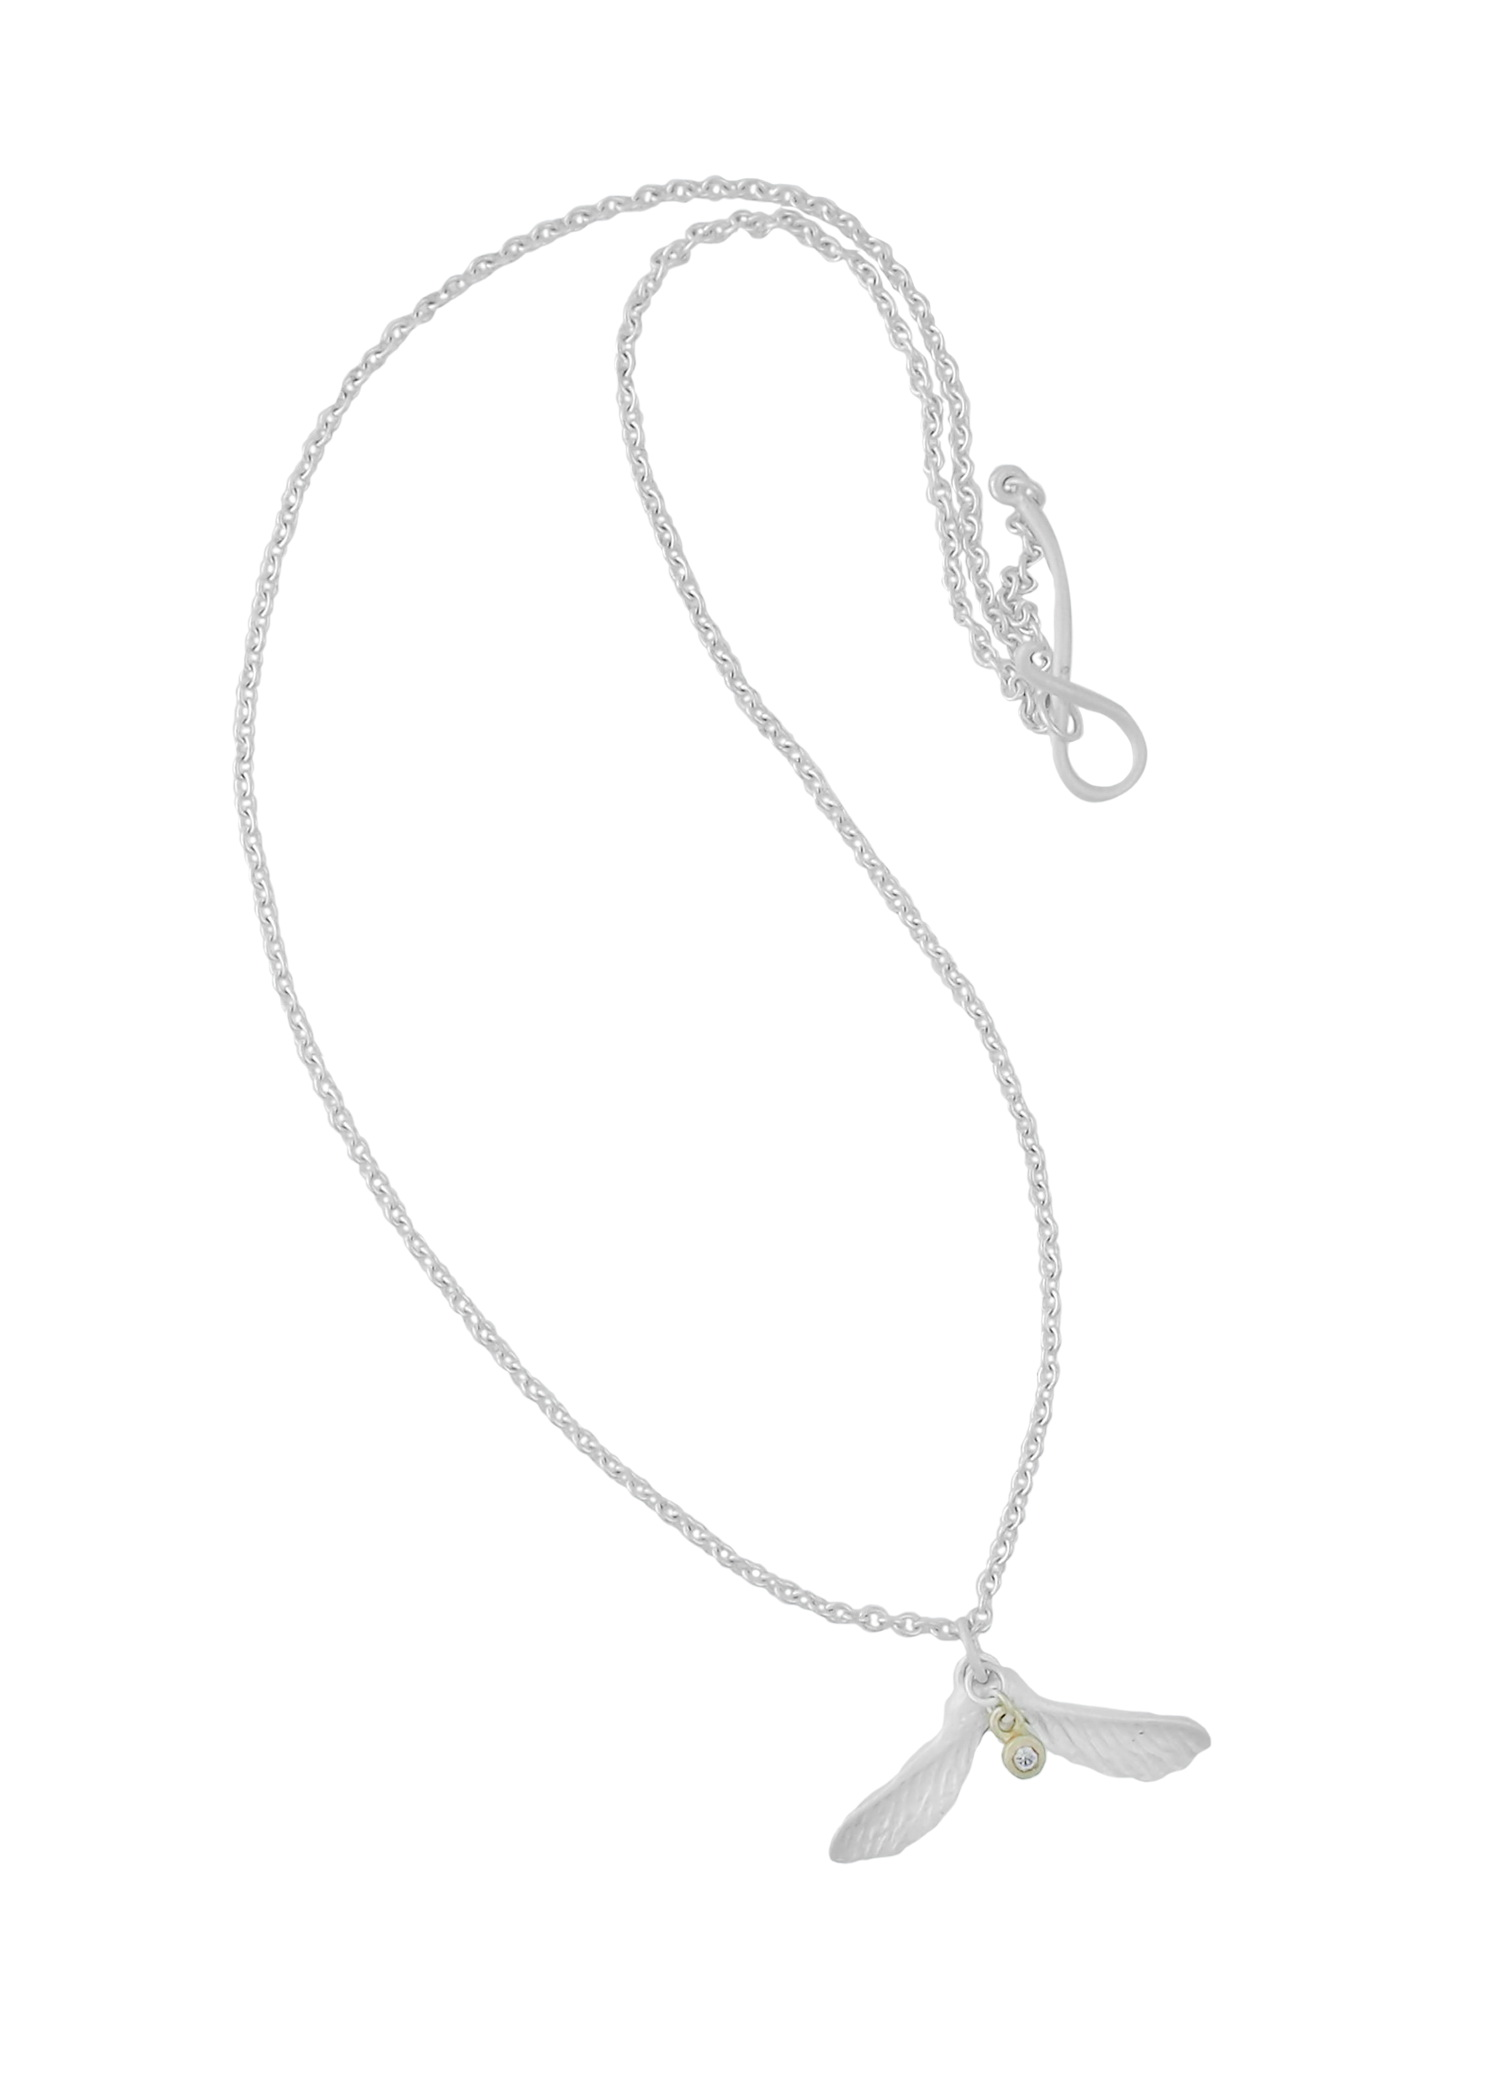 Dazzle Maple Nose Halsband, silver